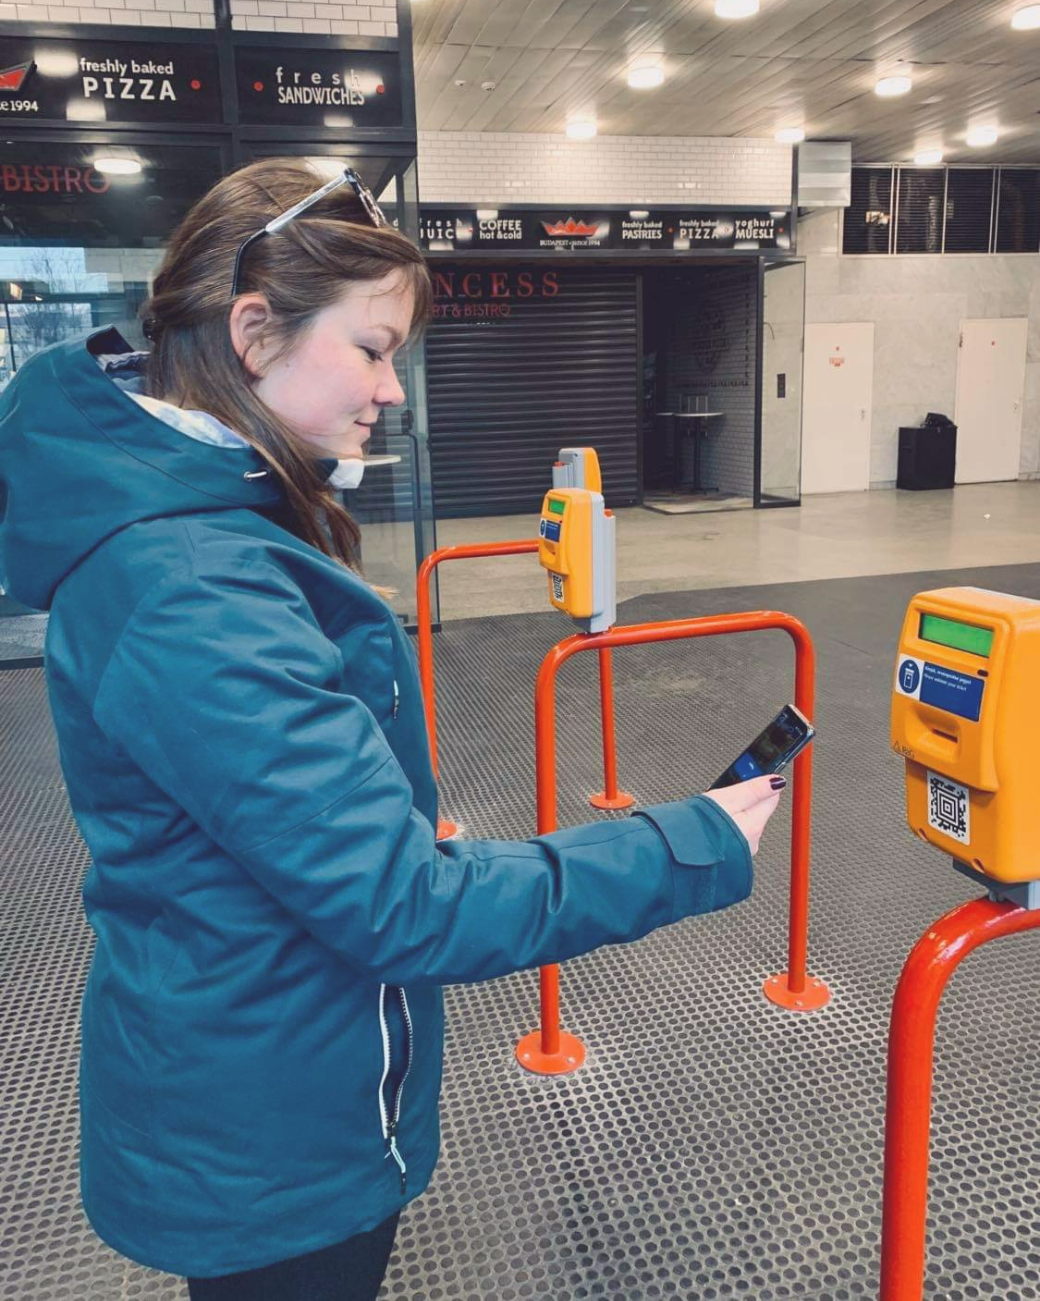 How to Use Mobile Tickets in Budapest: Pictured scanning QR code